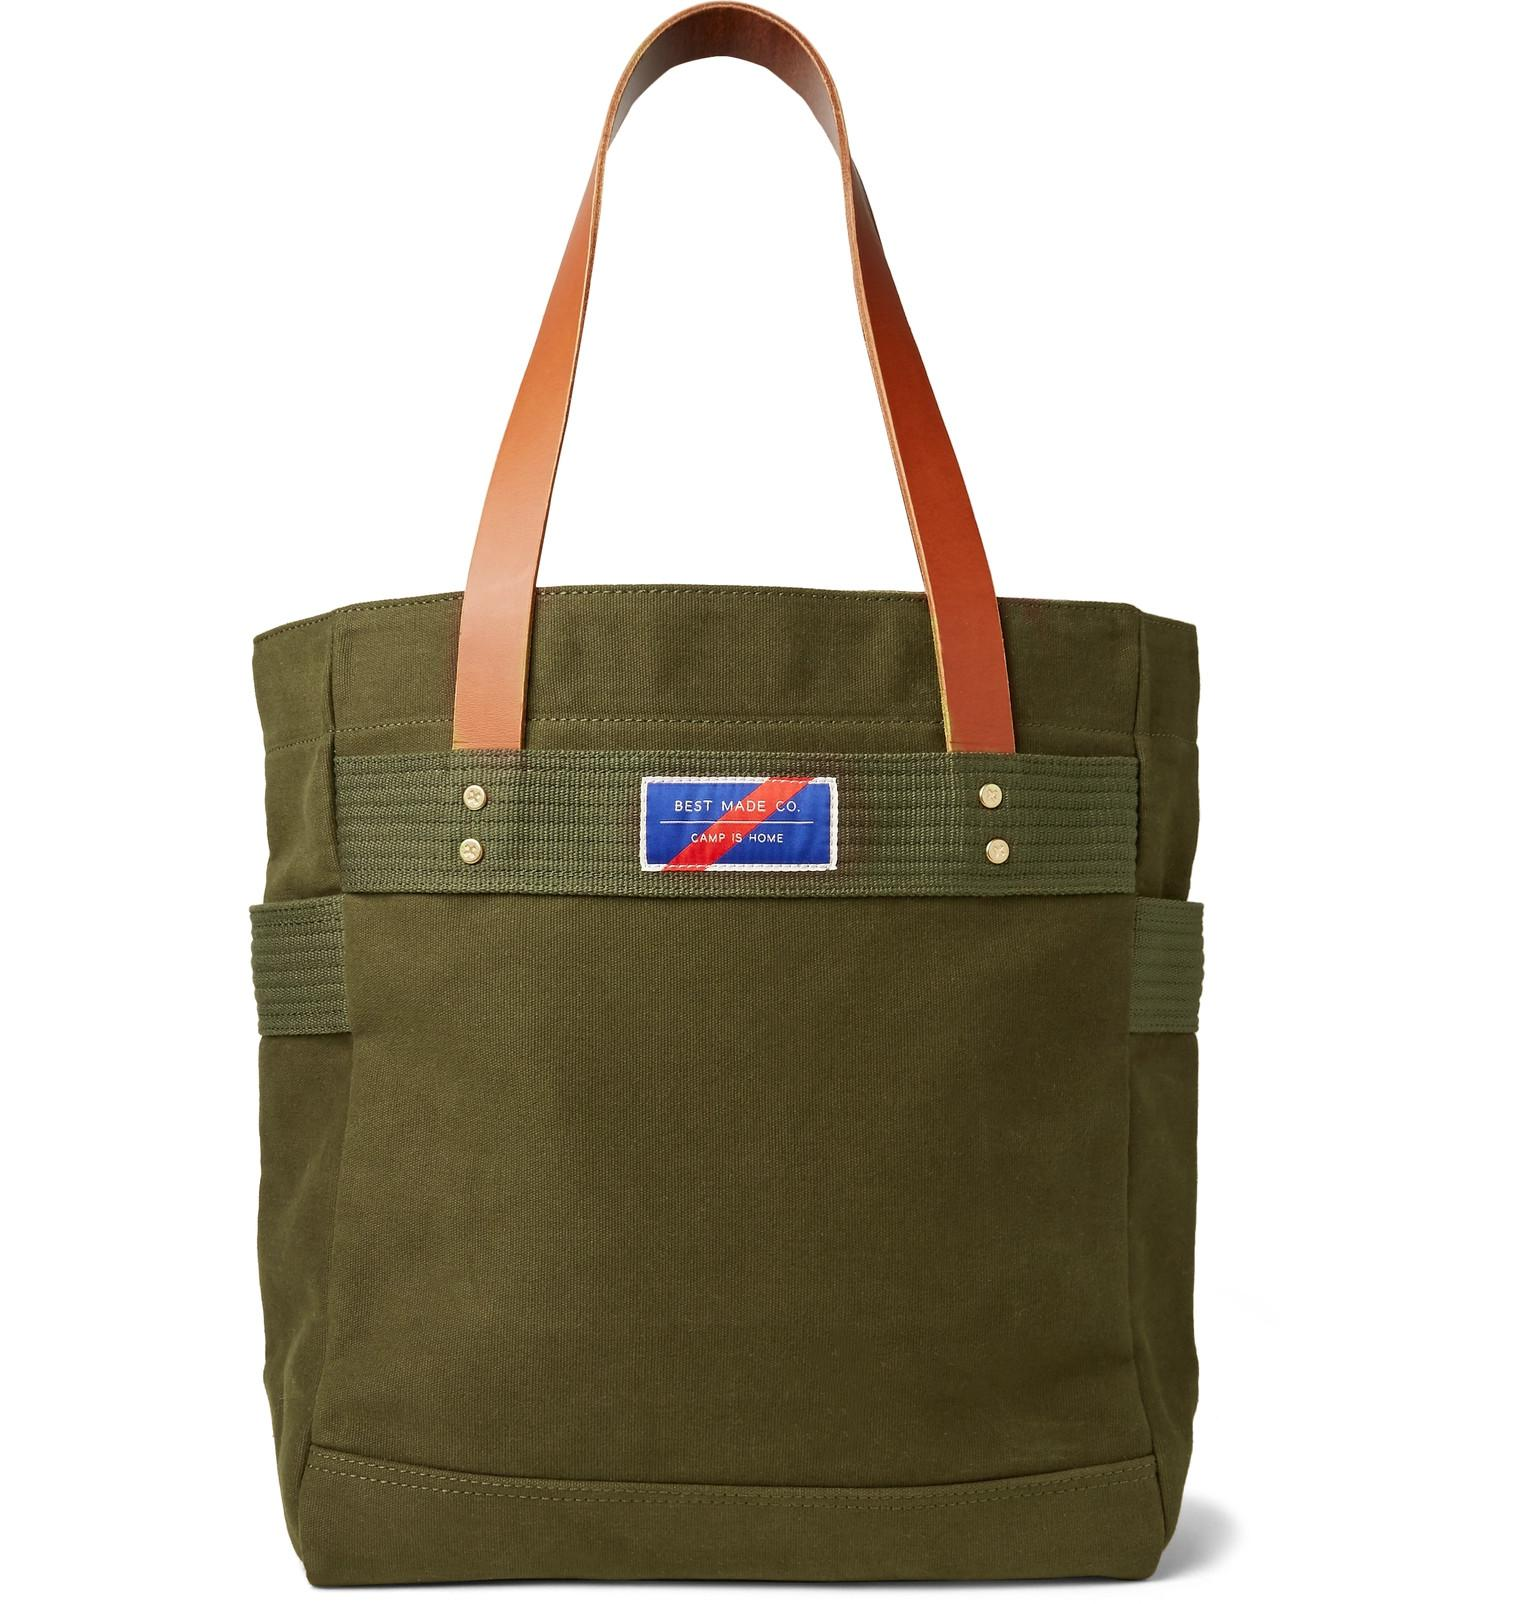 Best Made Company Men S Green Leather Trimmed Canvas Tote Bag